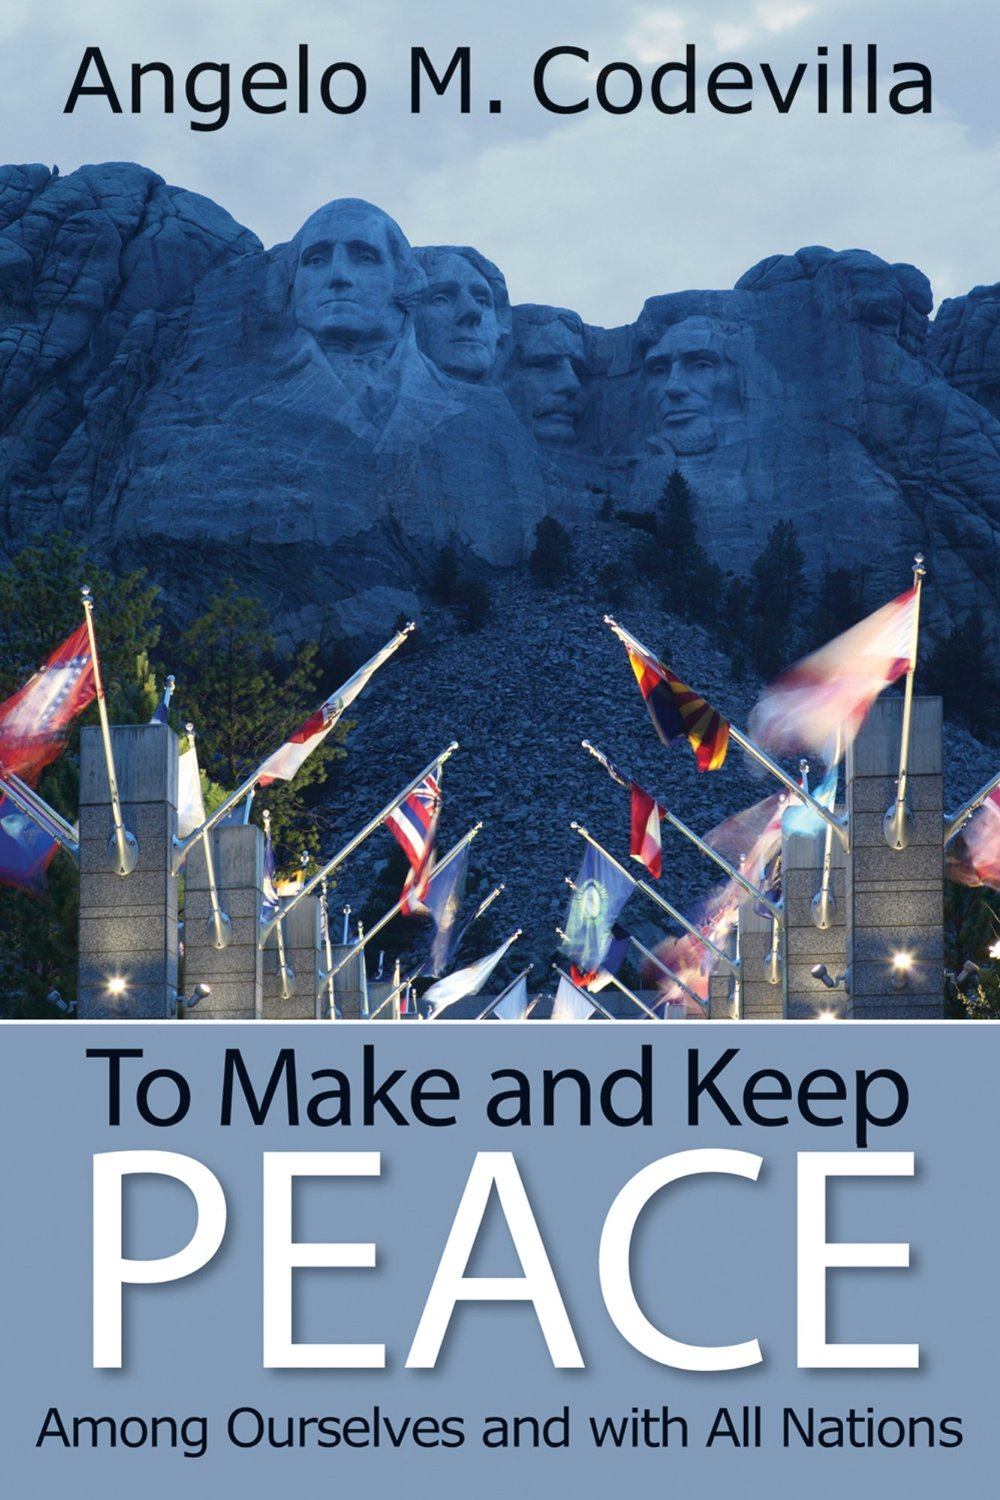 To Make and Keep Peace Among Ourselves and with All Nations